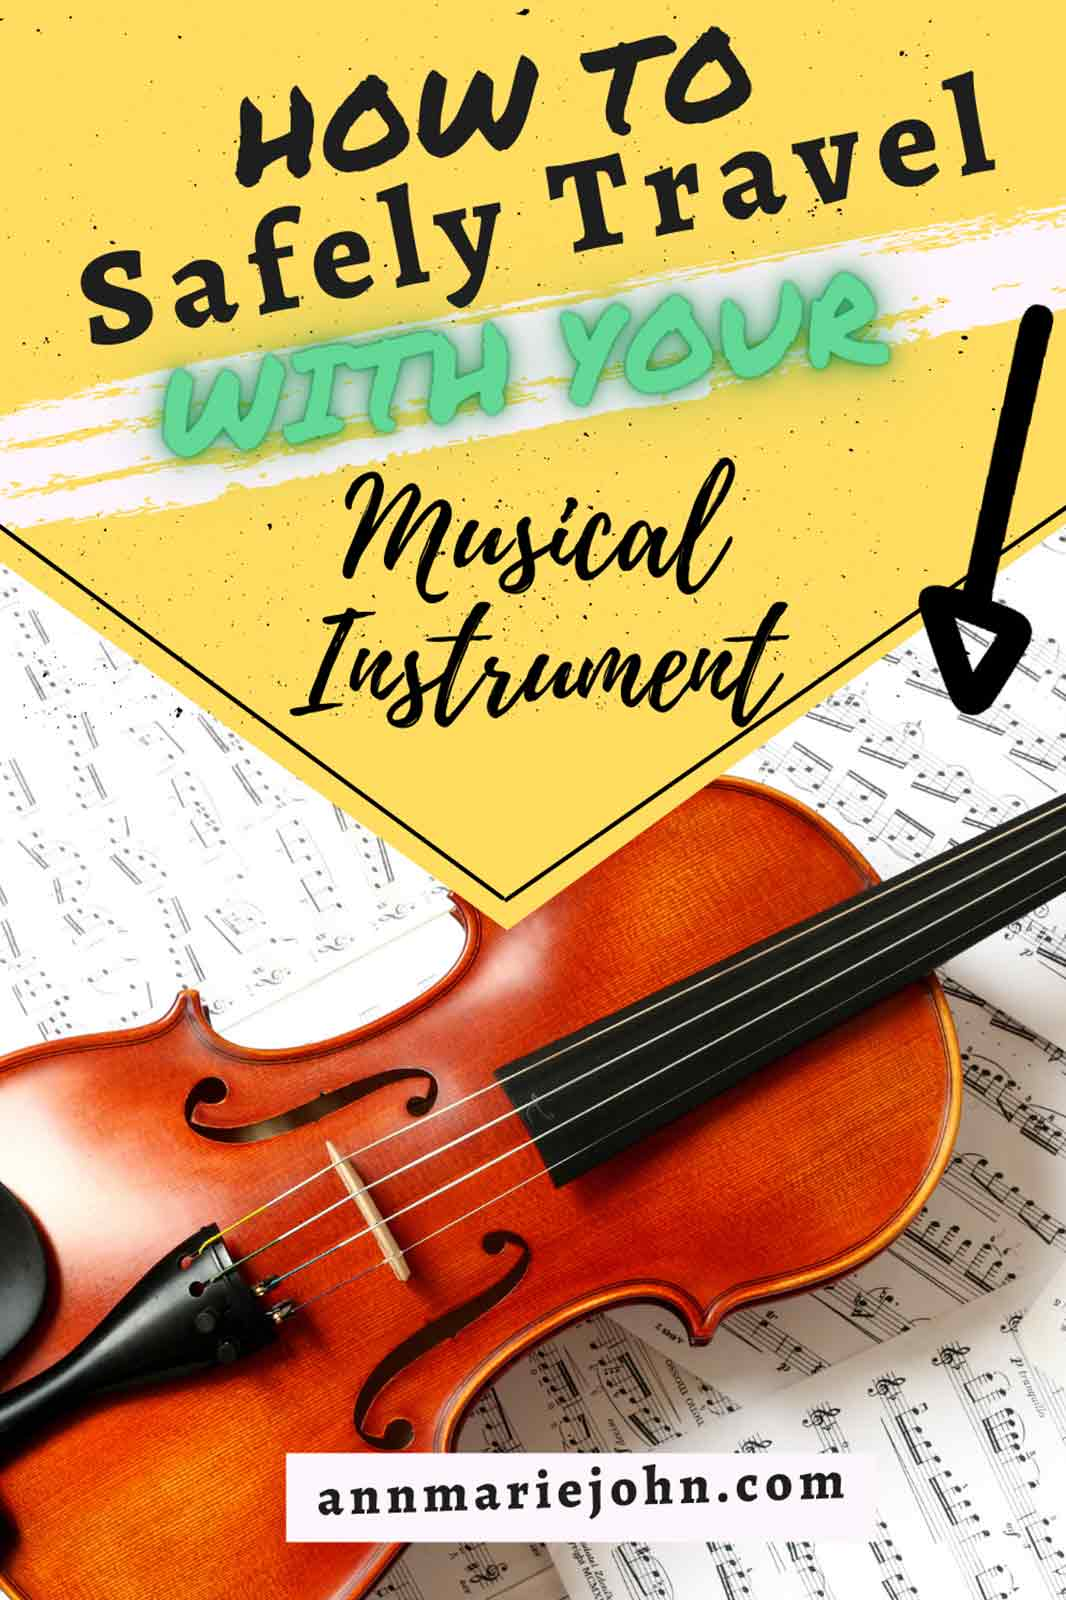 How to Safely Travel With a Musical Instrument